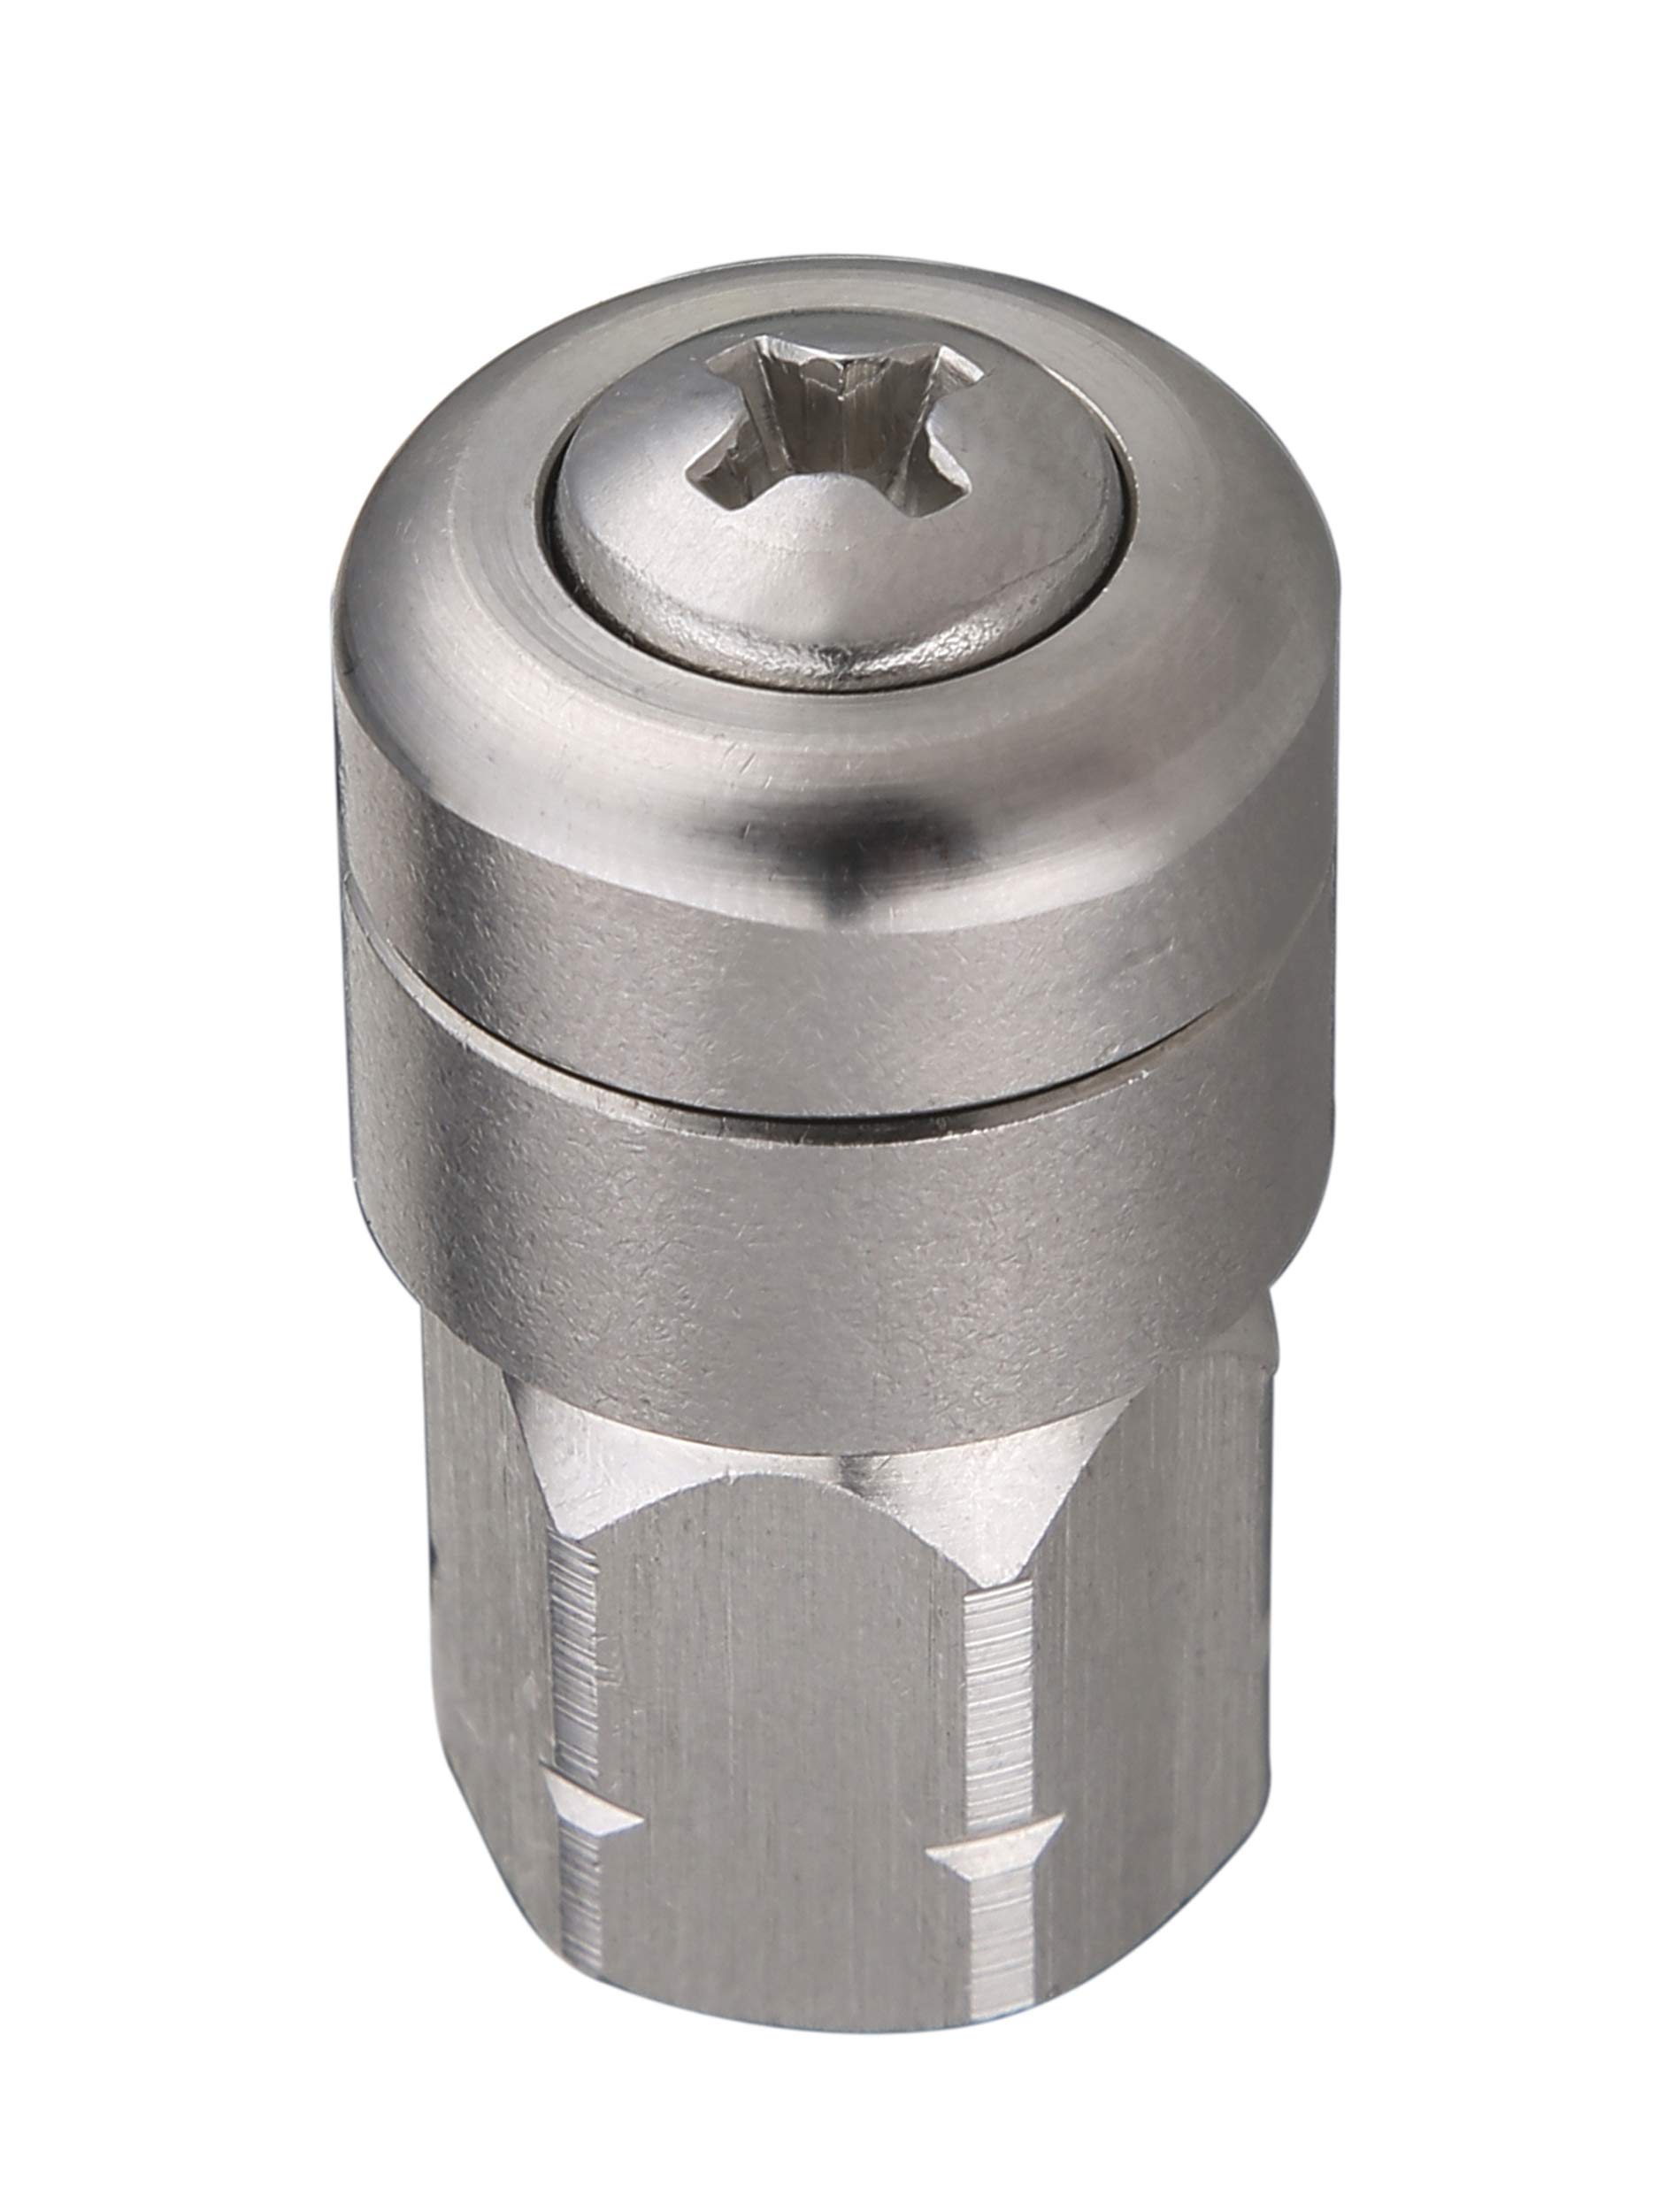 Tool Daily Sewer Jetter Nozzle for Pressure Washer, Rotating, 1/4 Inch Female NPT, 4000 PSI by Tool Daily